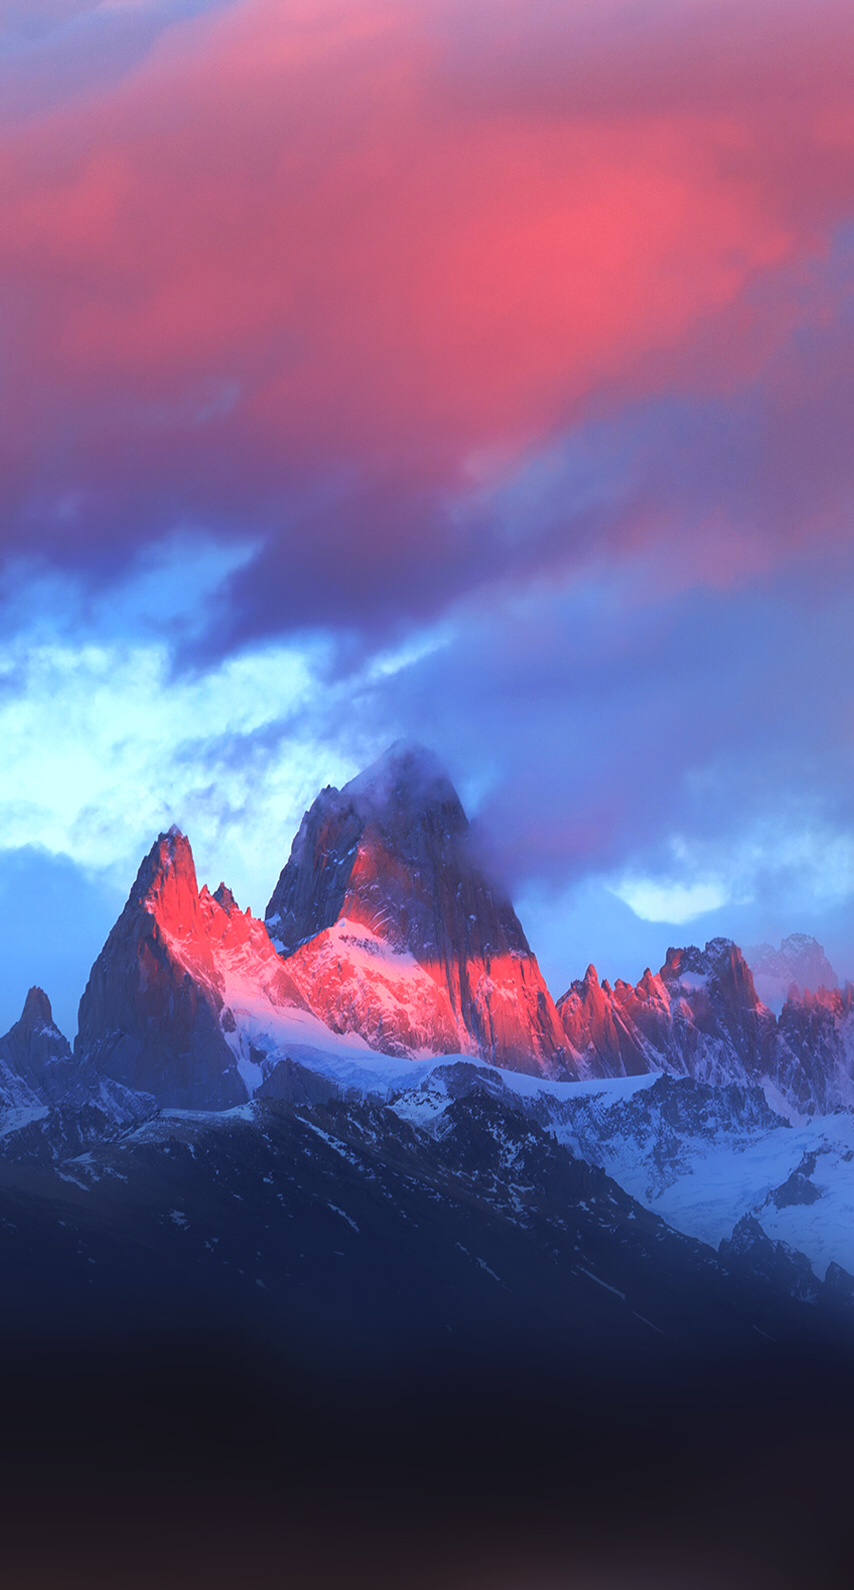 iPhone, Colorful, Purple, Mountains Wallpaper iPhone